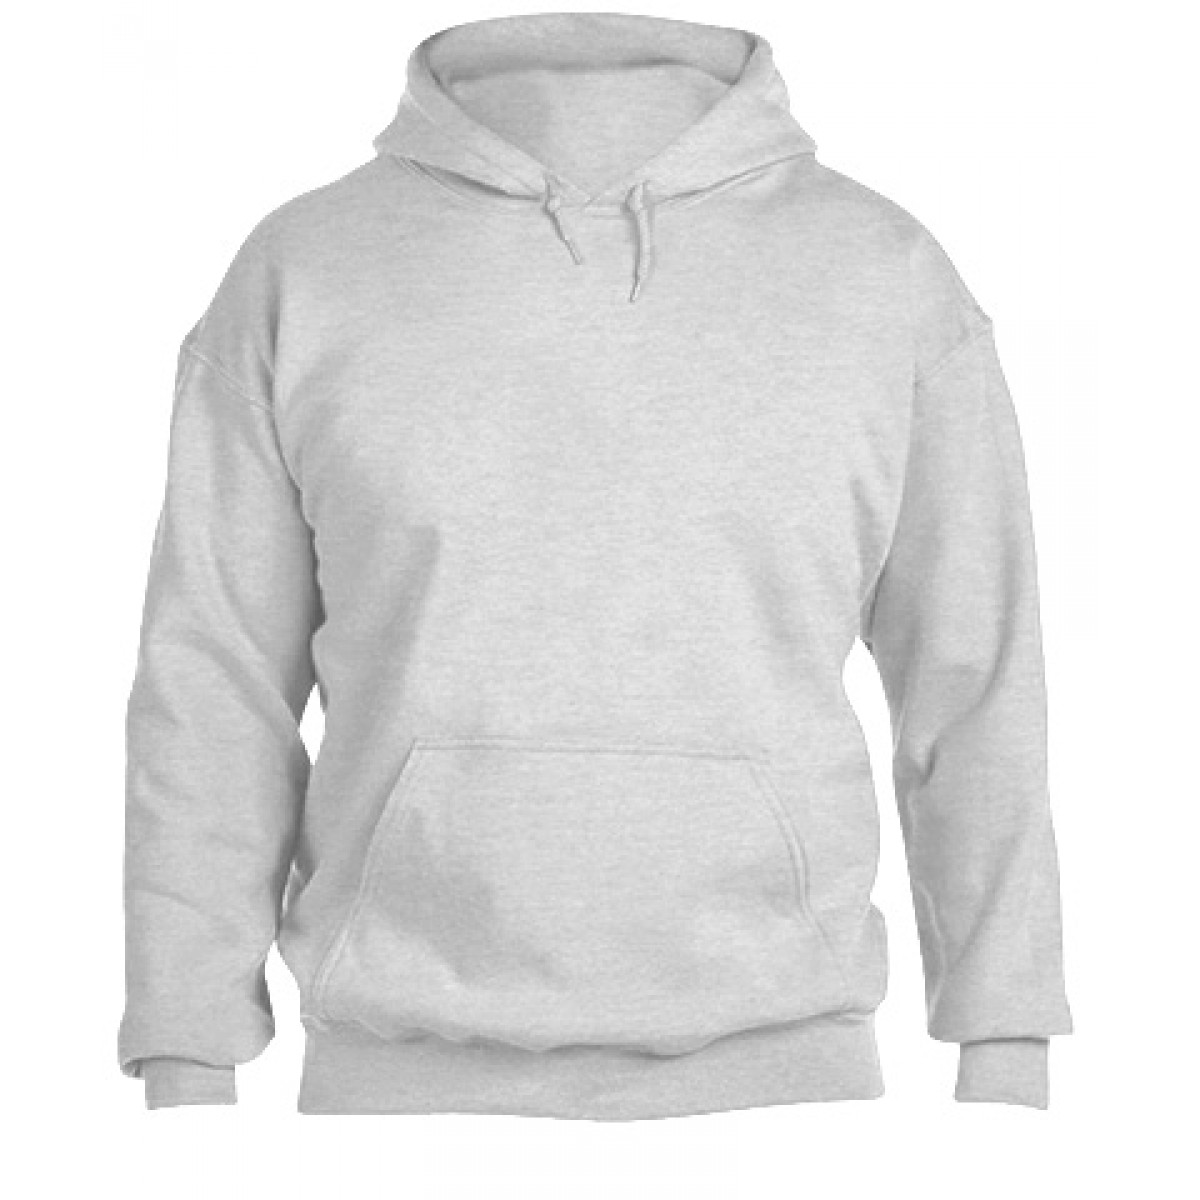 Solid Hooded Sweatshirt  50/50 Heavy Blend-Ash Gray-2XL